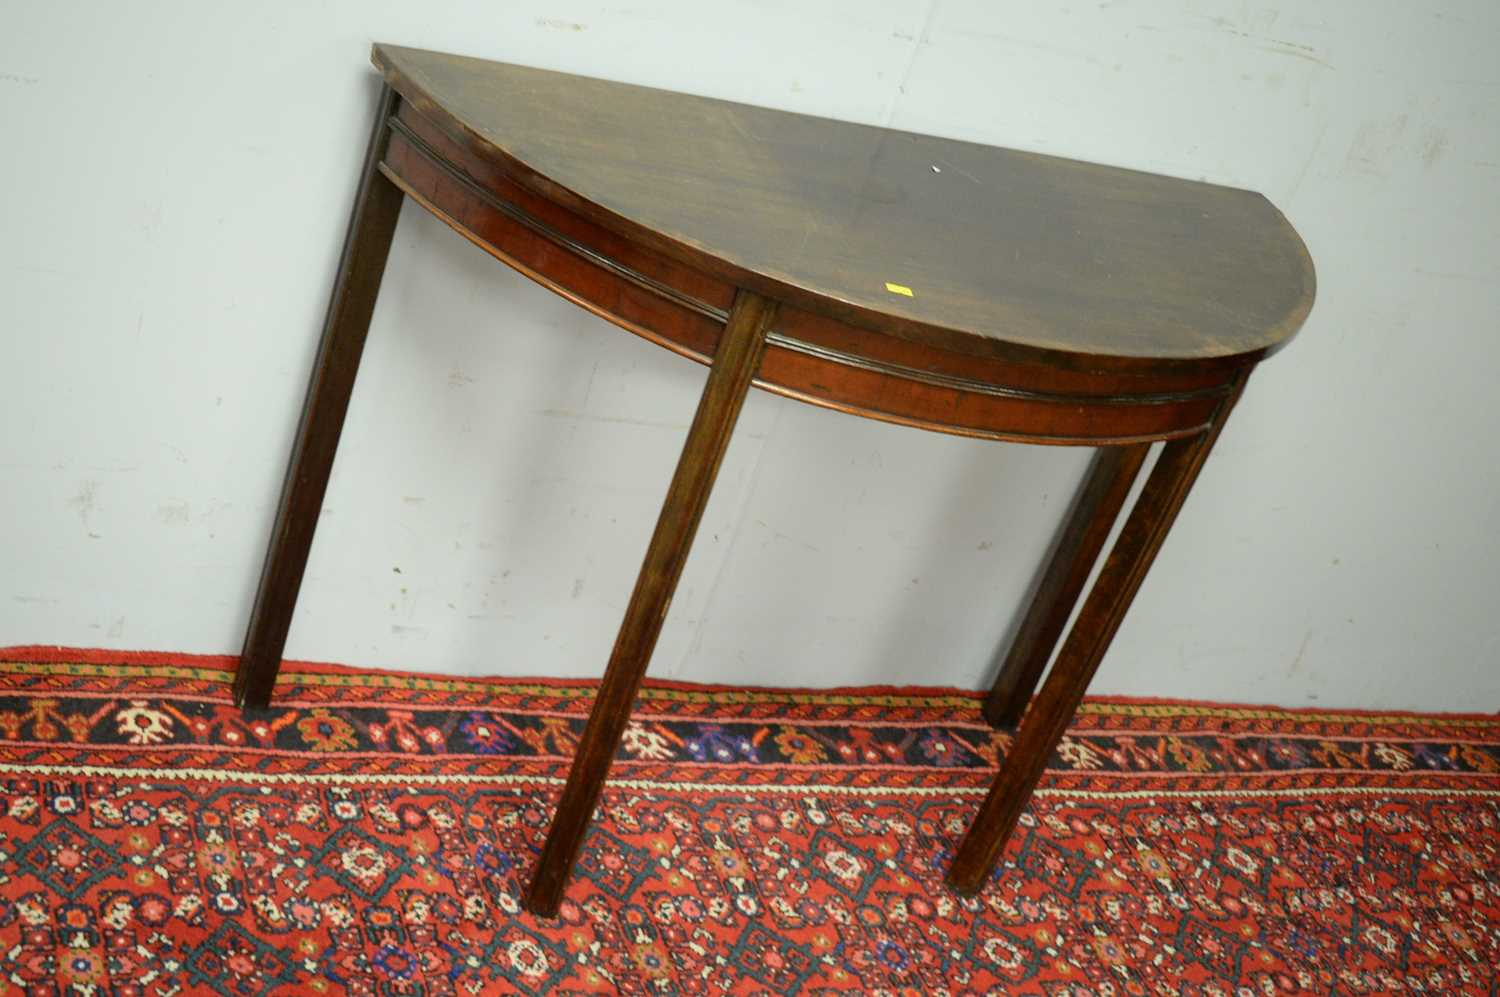 19th C mahogany demi lune side table. - Image 3 of 3